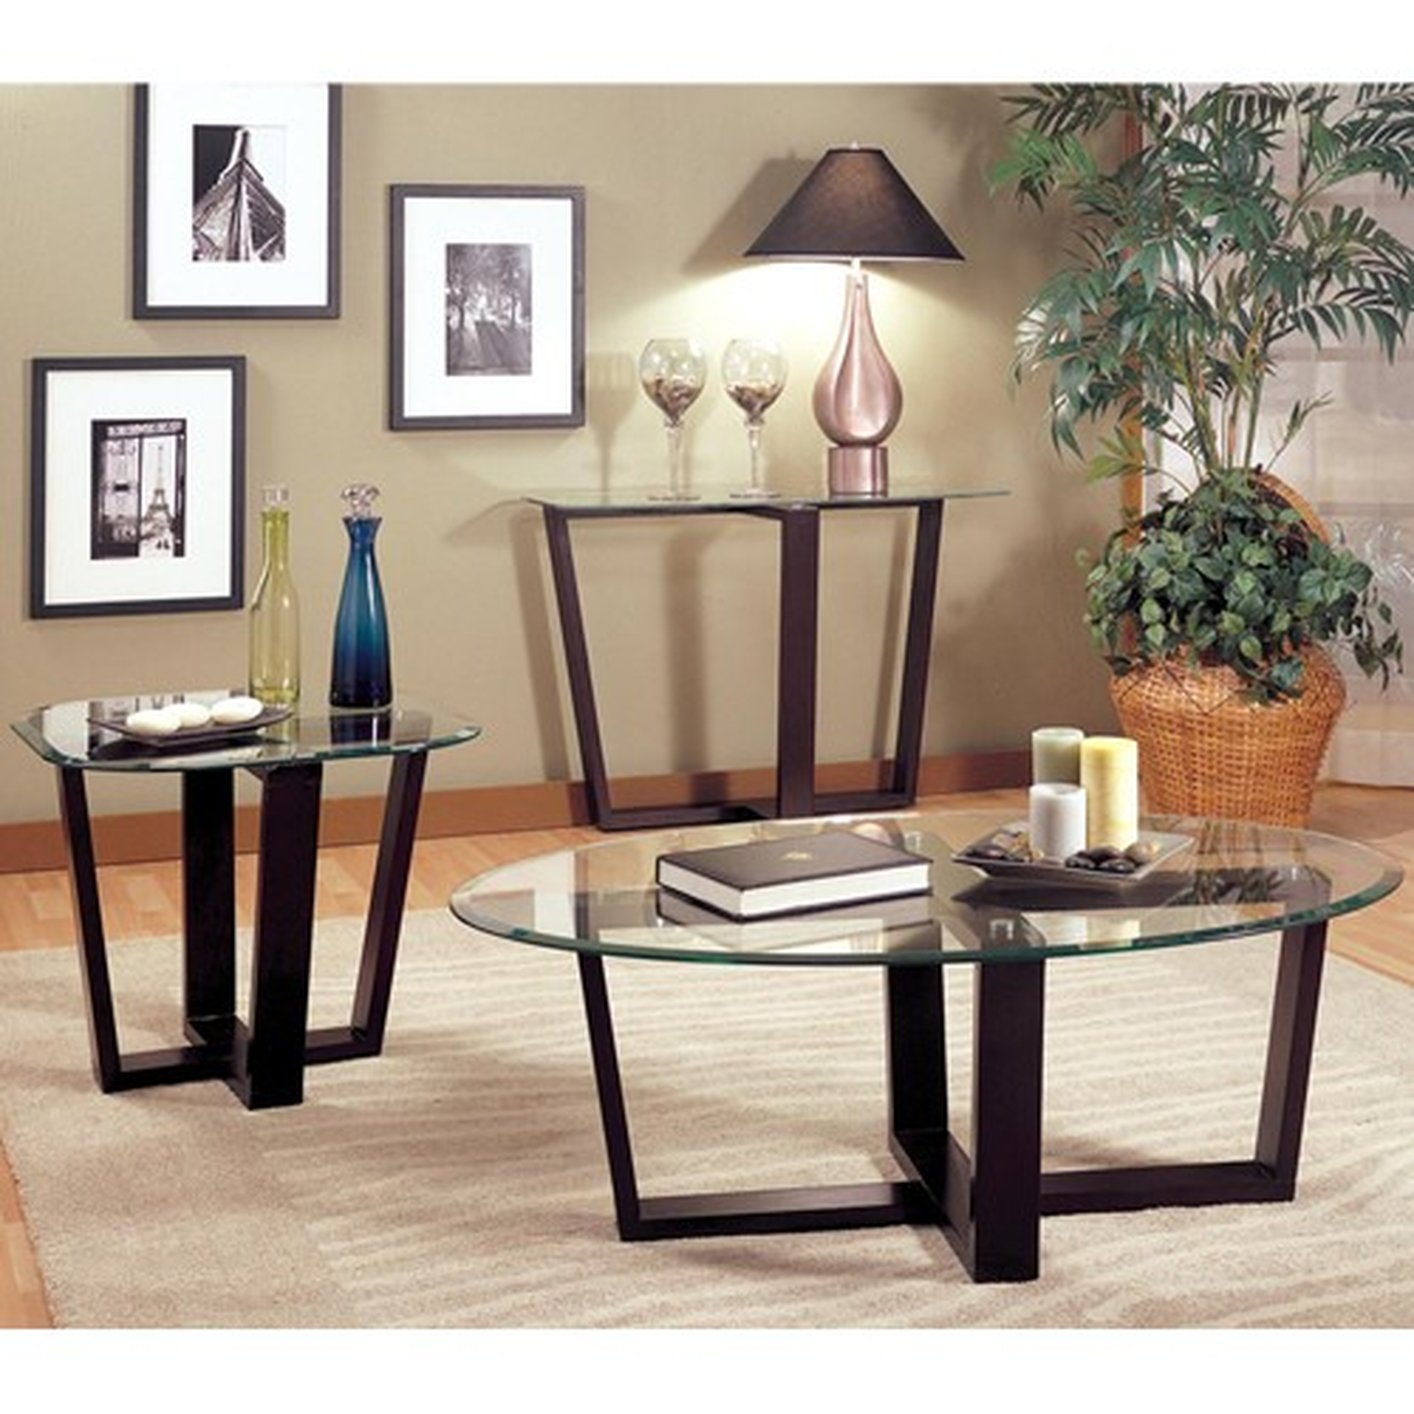 Alexis Black Glass Coffee Table Set & Alexis Black Glass Coffee Table Set - Steal-A-Sofa Furniture Outlet ...